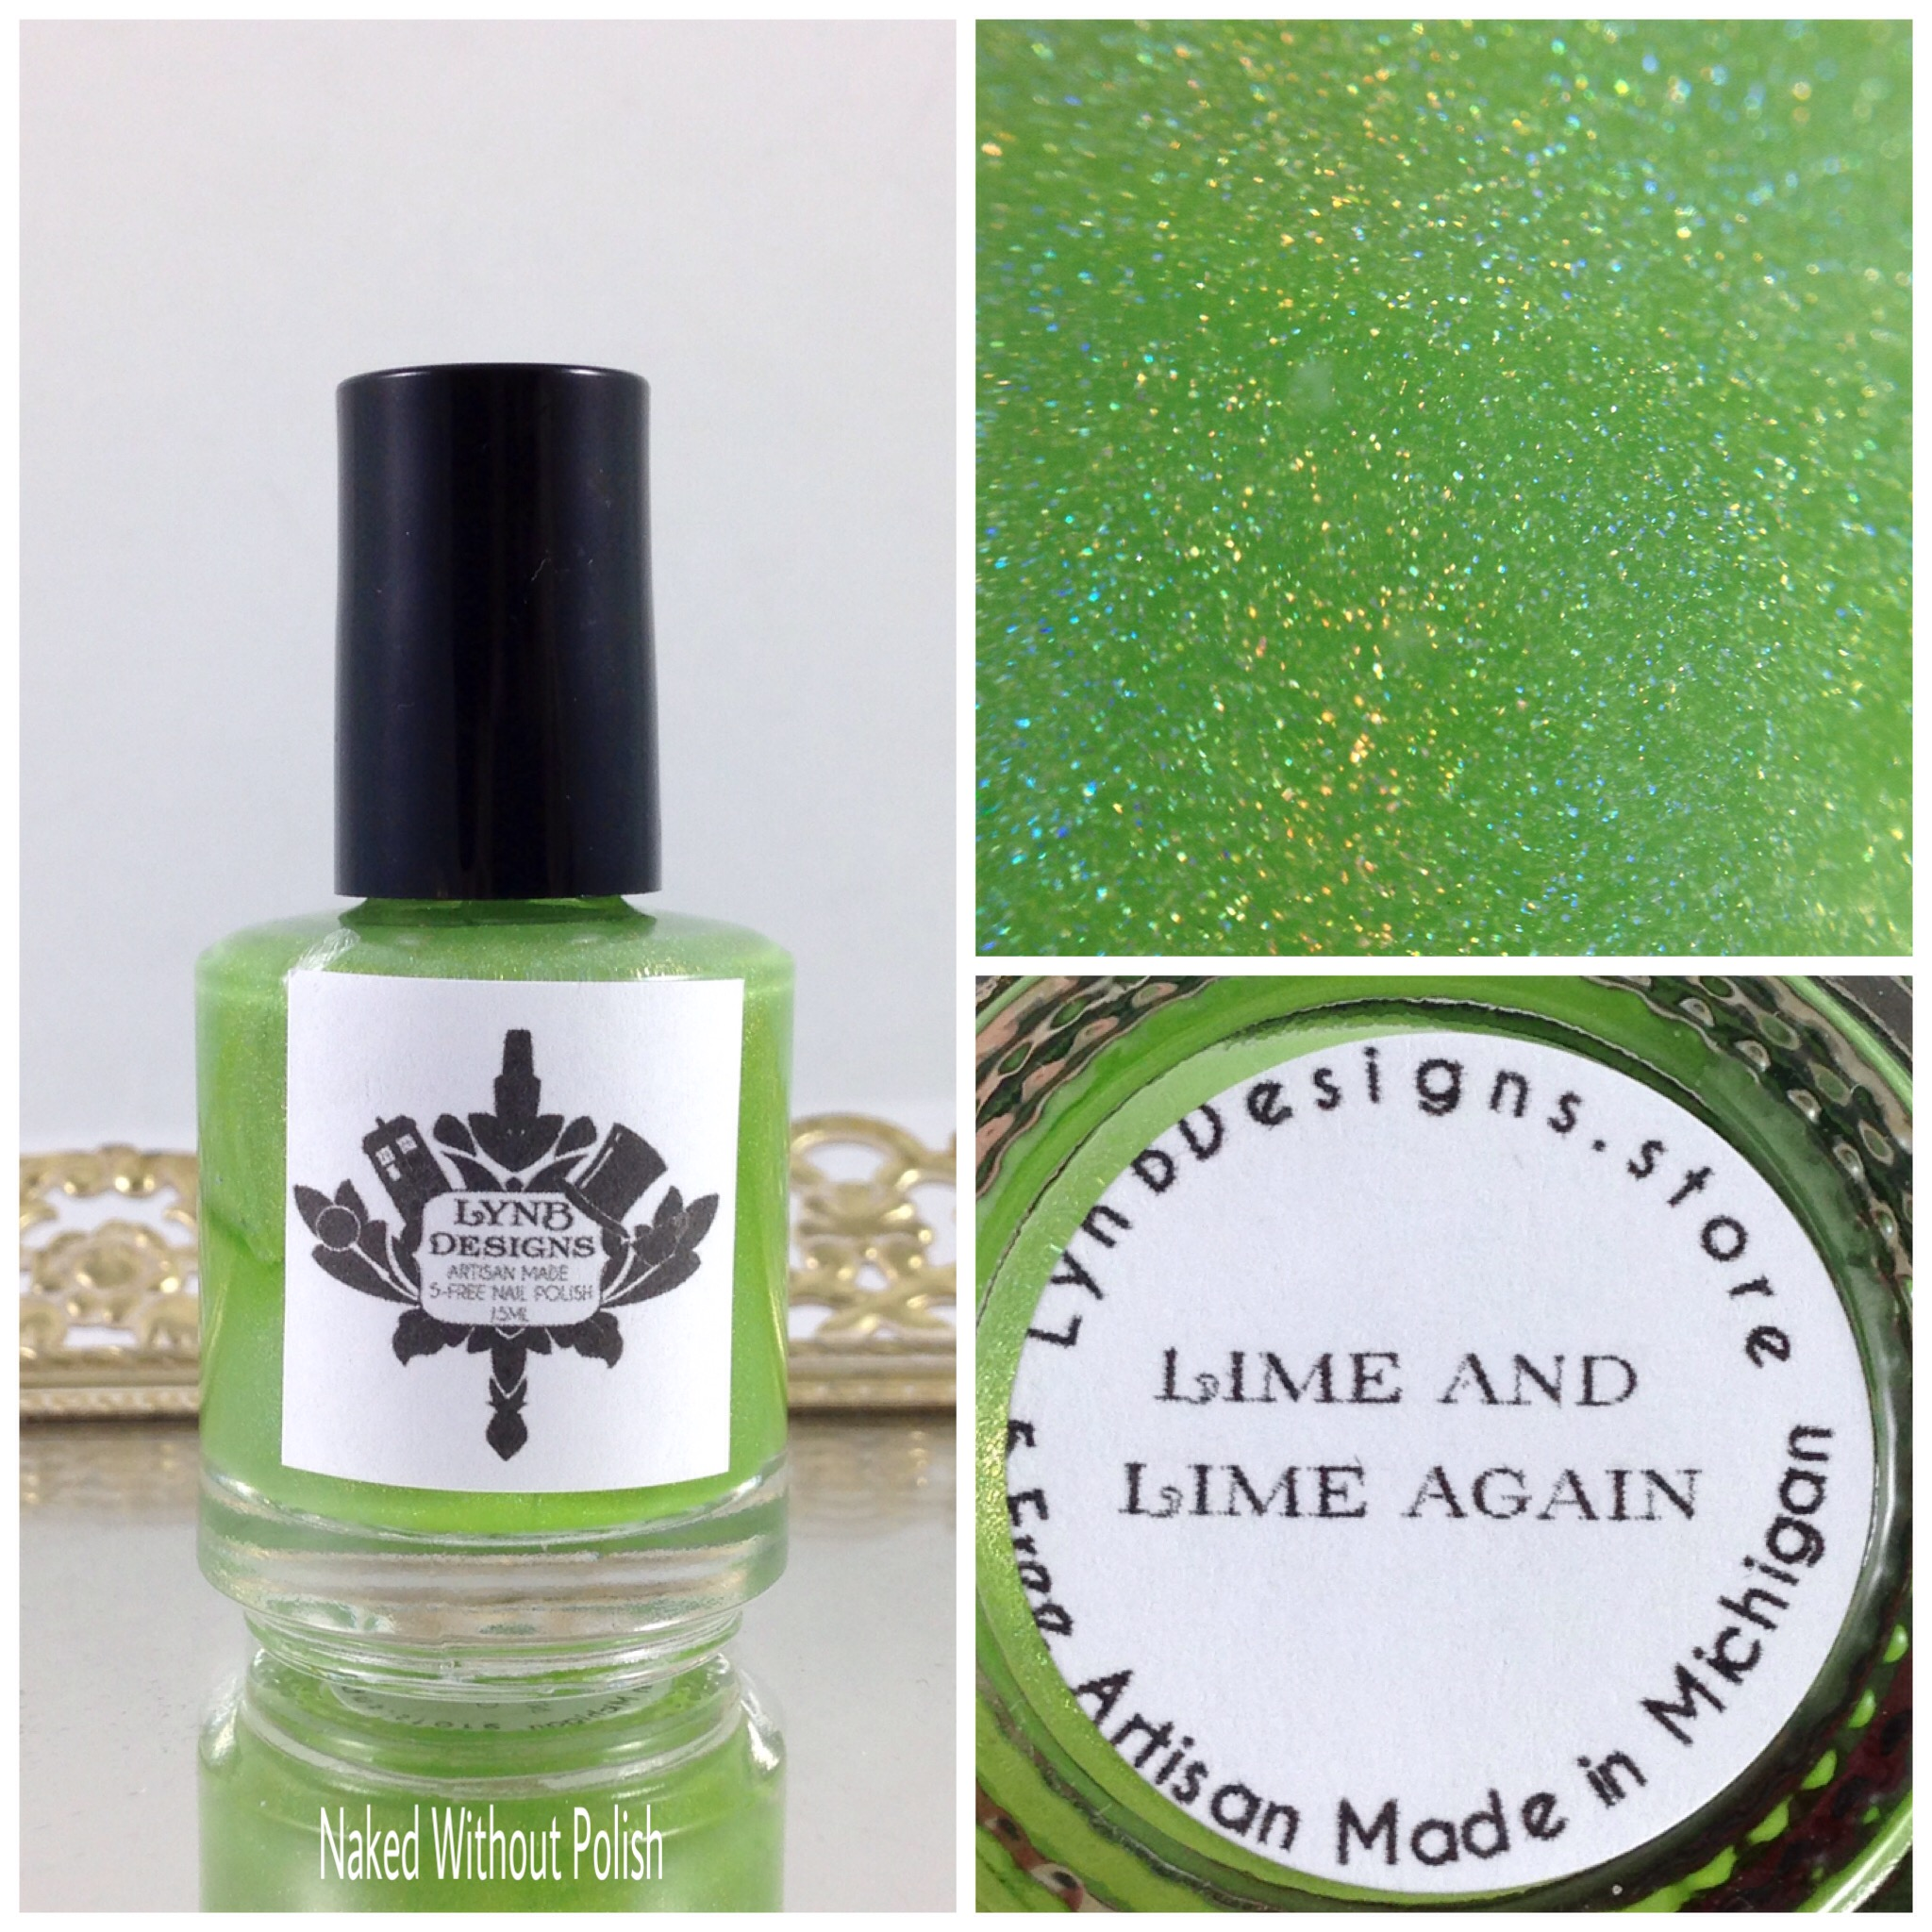 LynBDesigns-Lime-and-Lime-Again-1